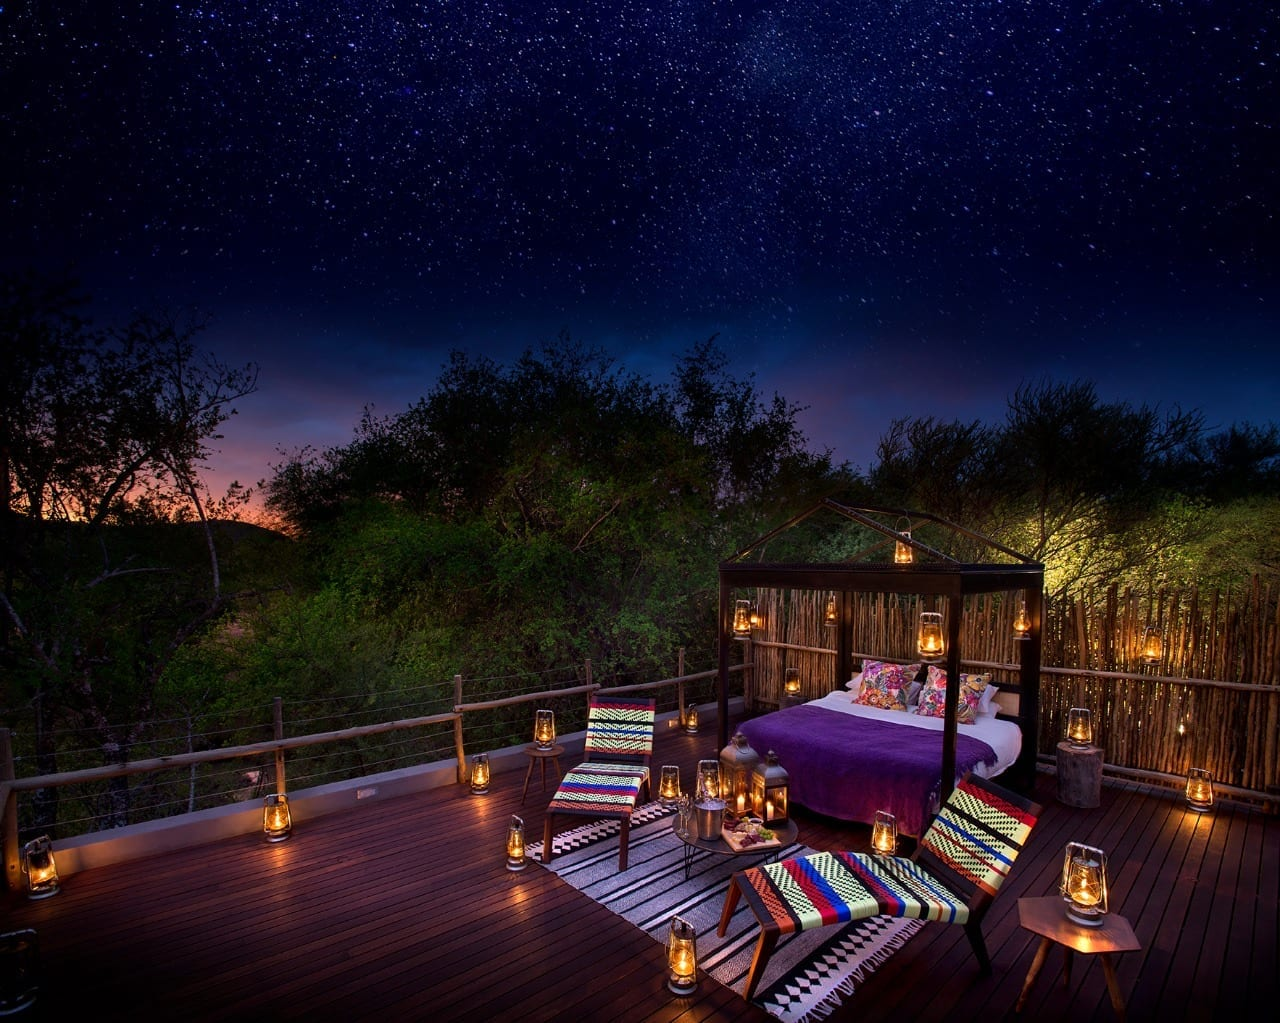 Star Beds at Jacis South Africa